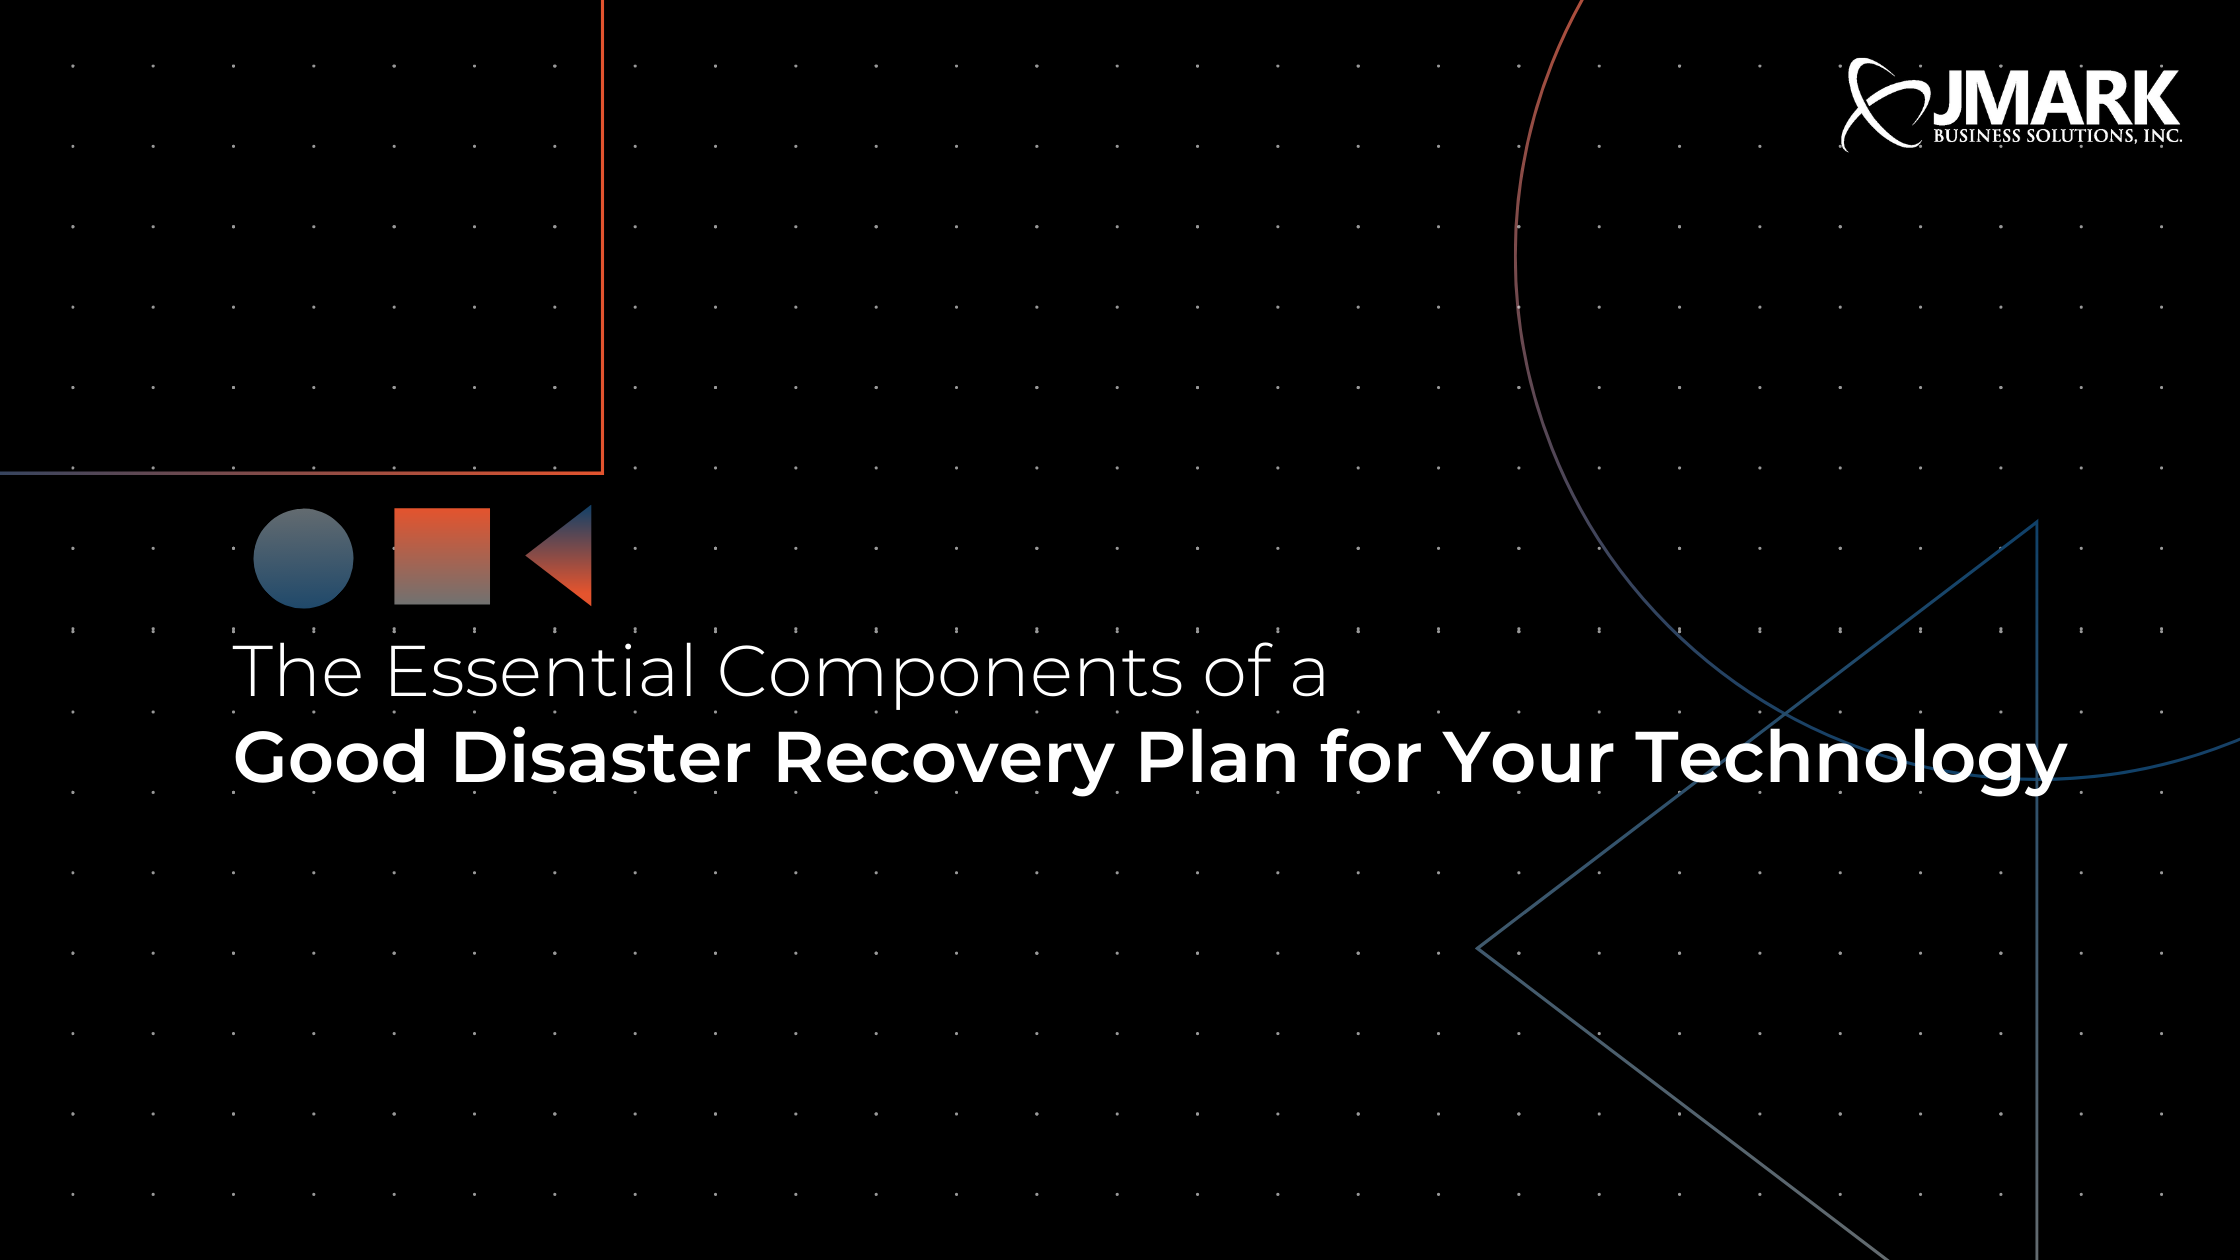 The Essential Components of a Good Disaster Recovery Plan for Your Technology